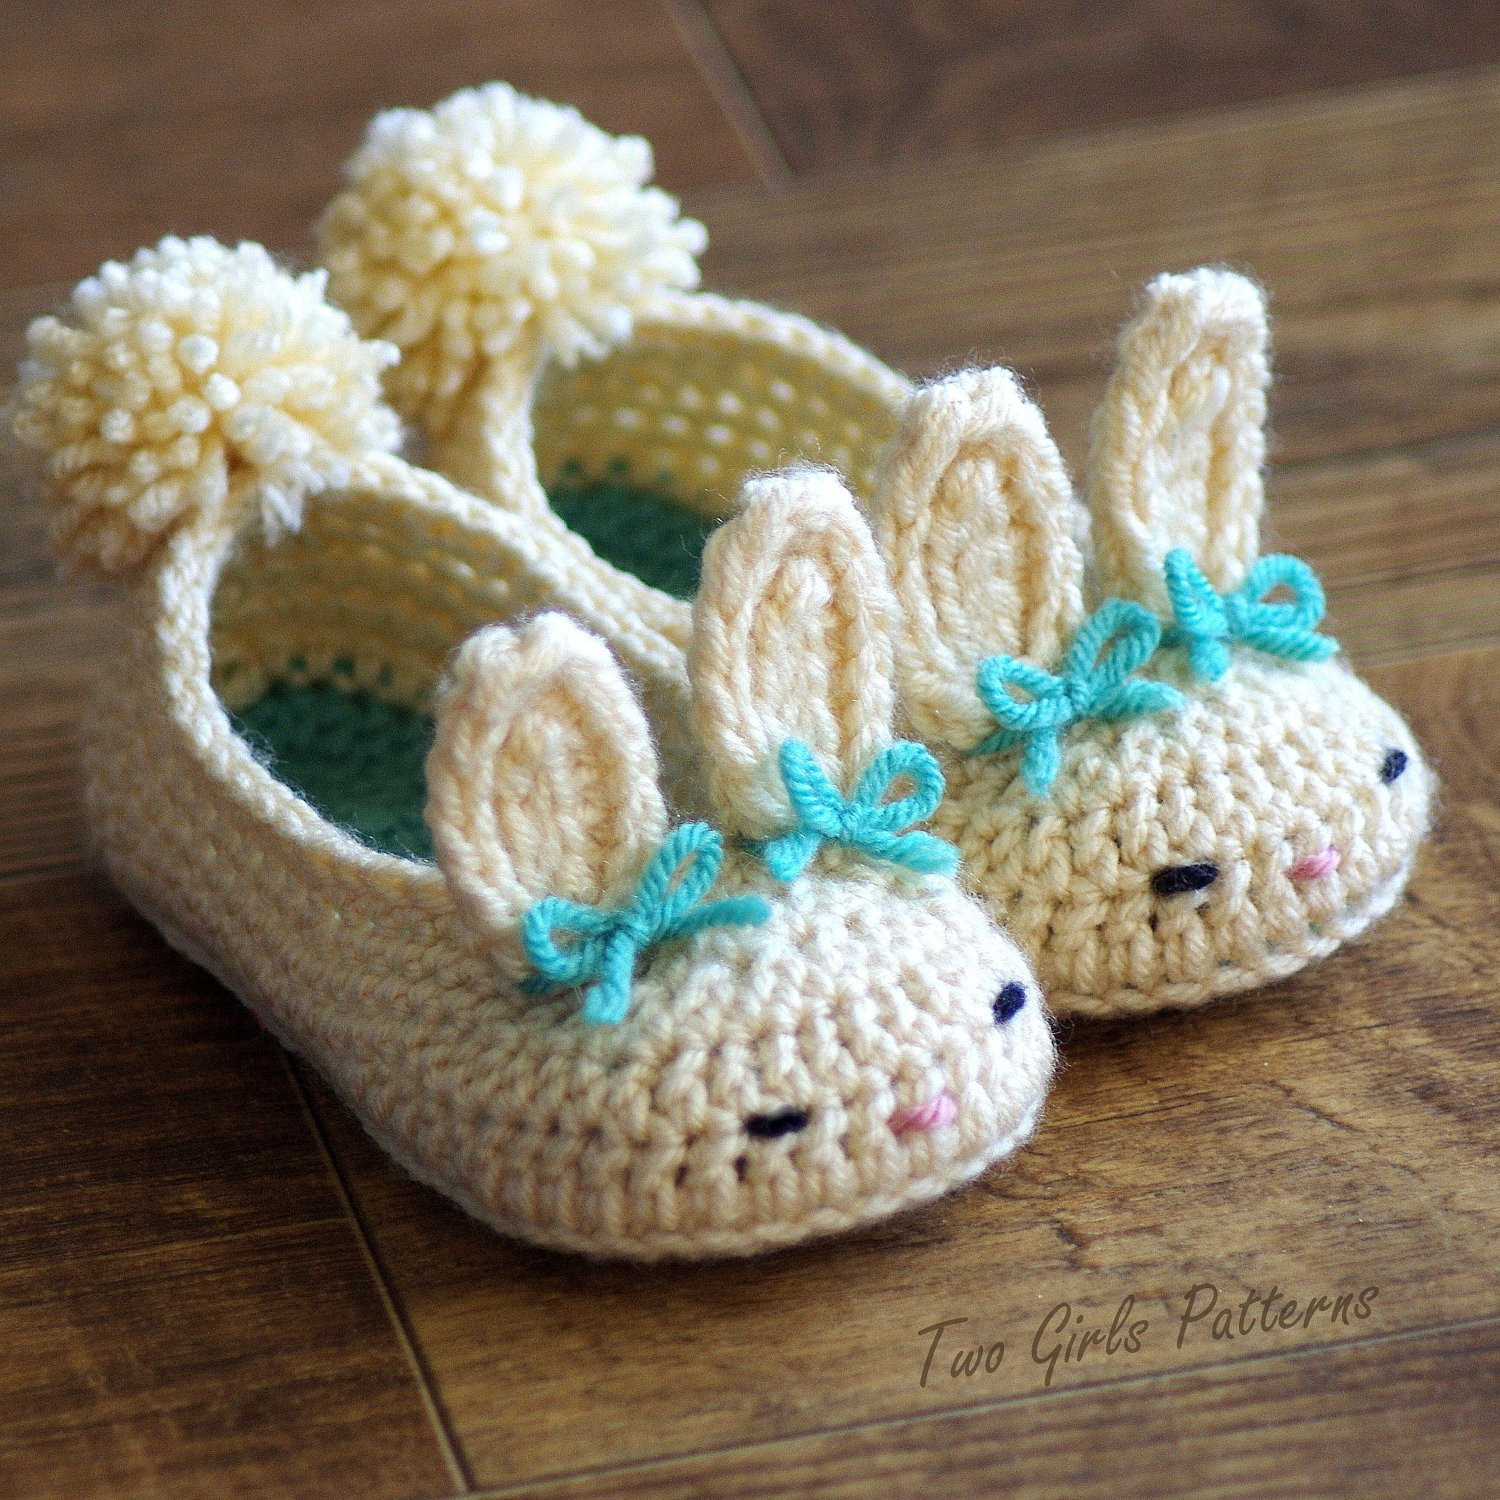 Unique toddler Bunny Slippers 214 Classic Bunny Slipper Crochet Crochet toddler Slippers Of Delightful 50 Images Crochet toddler Slippers